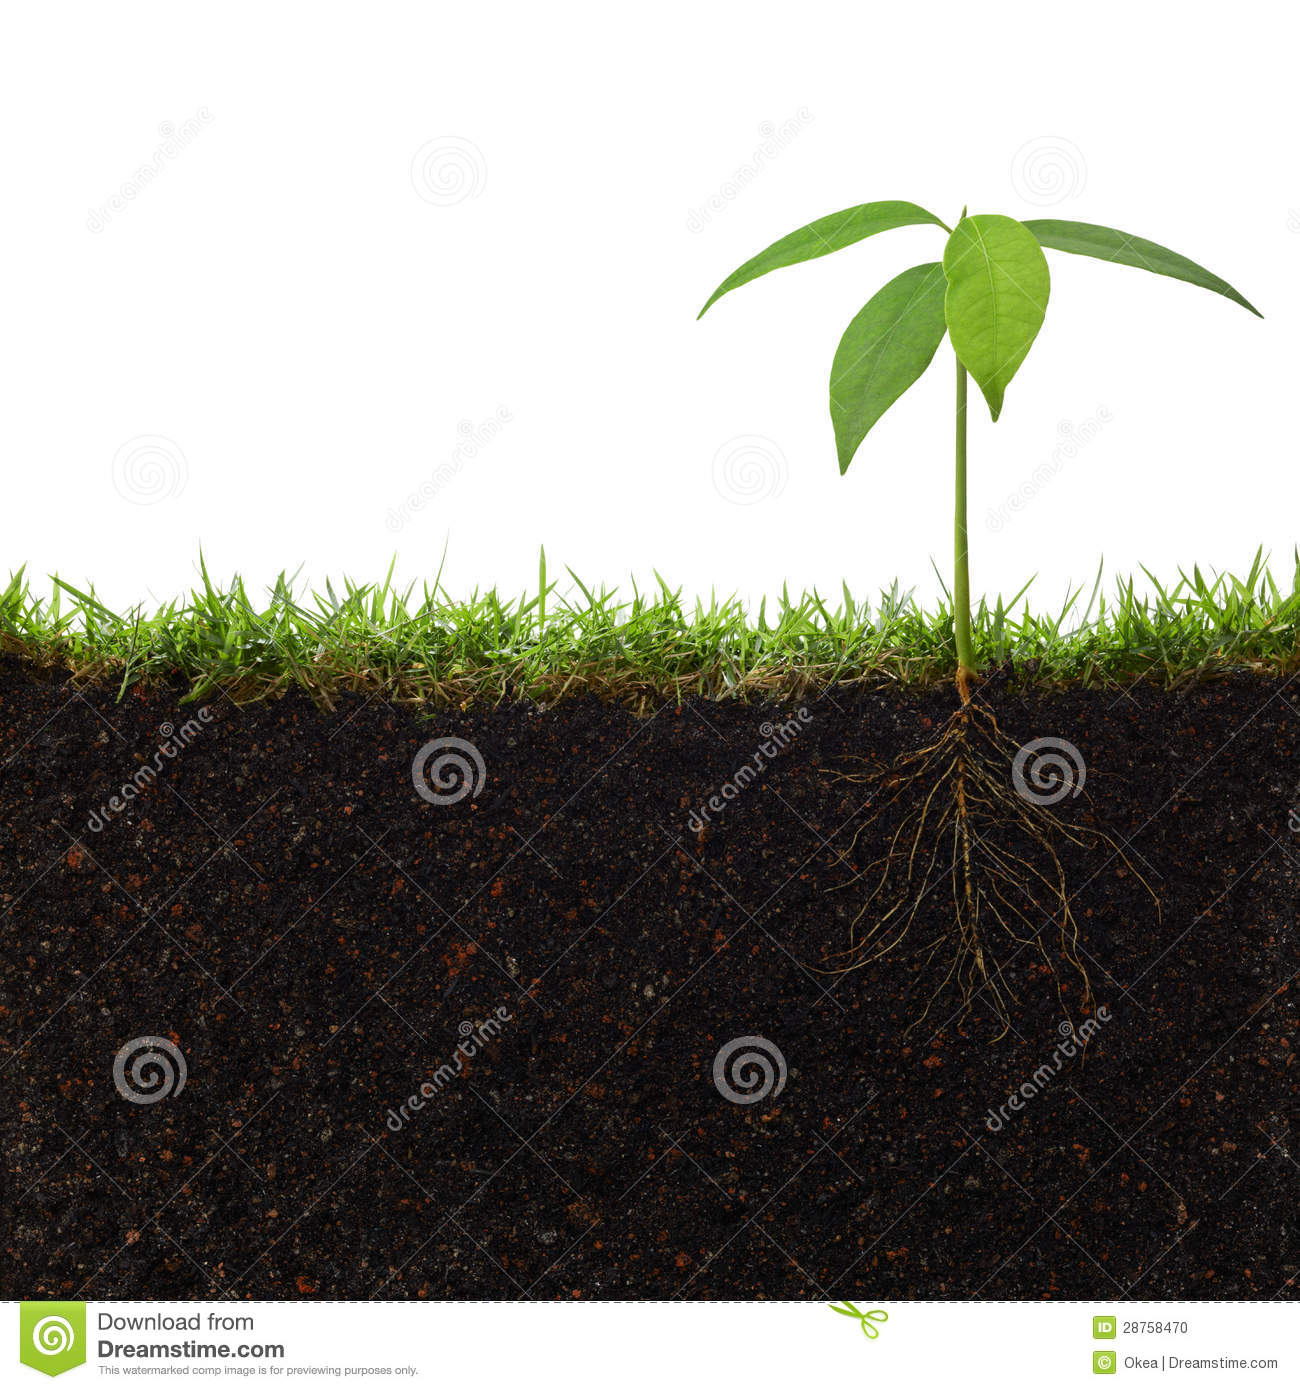 Plant With Roots Stock Photo. Image Of Sowing